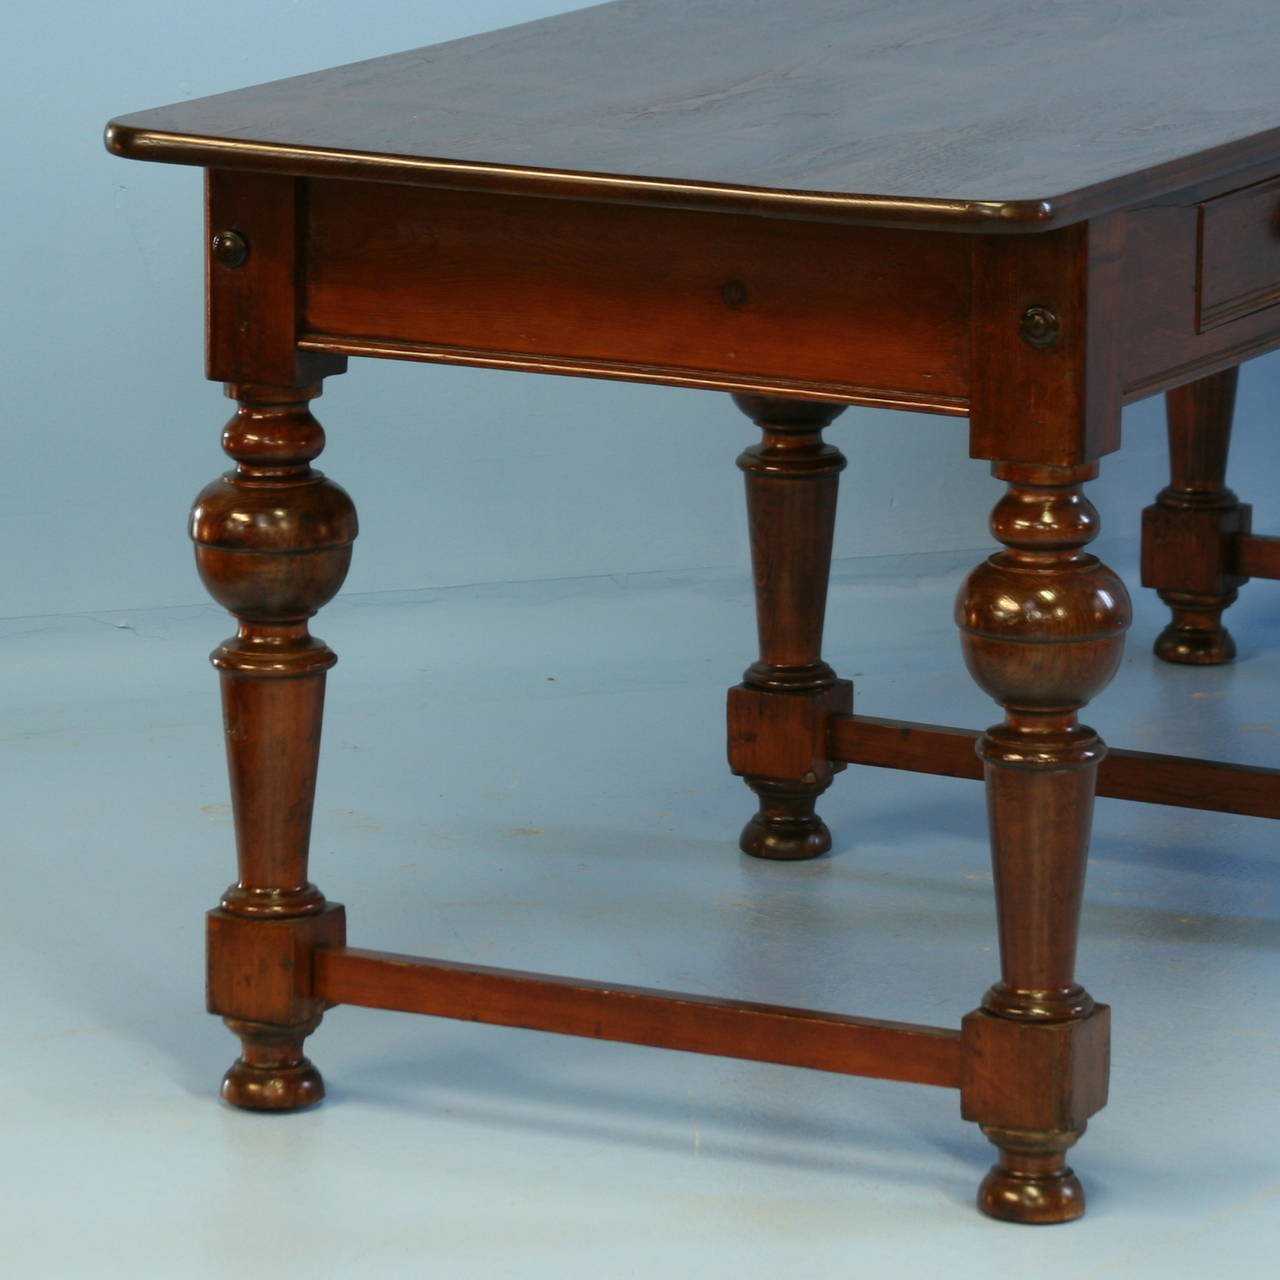 Long Sofa Table: Antique Long Library Table Console Table With 6 Legs